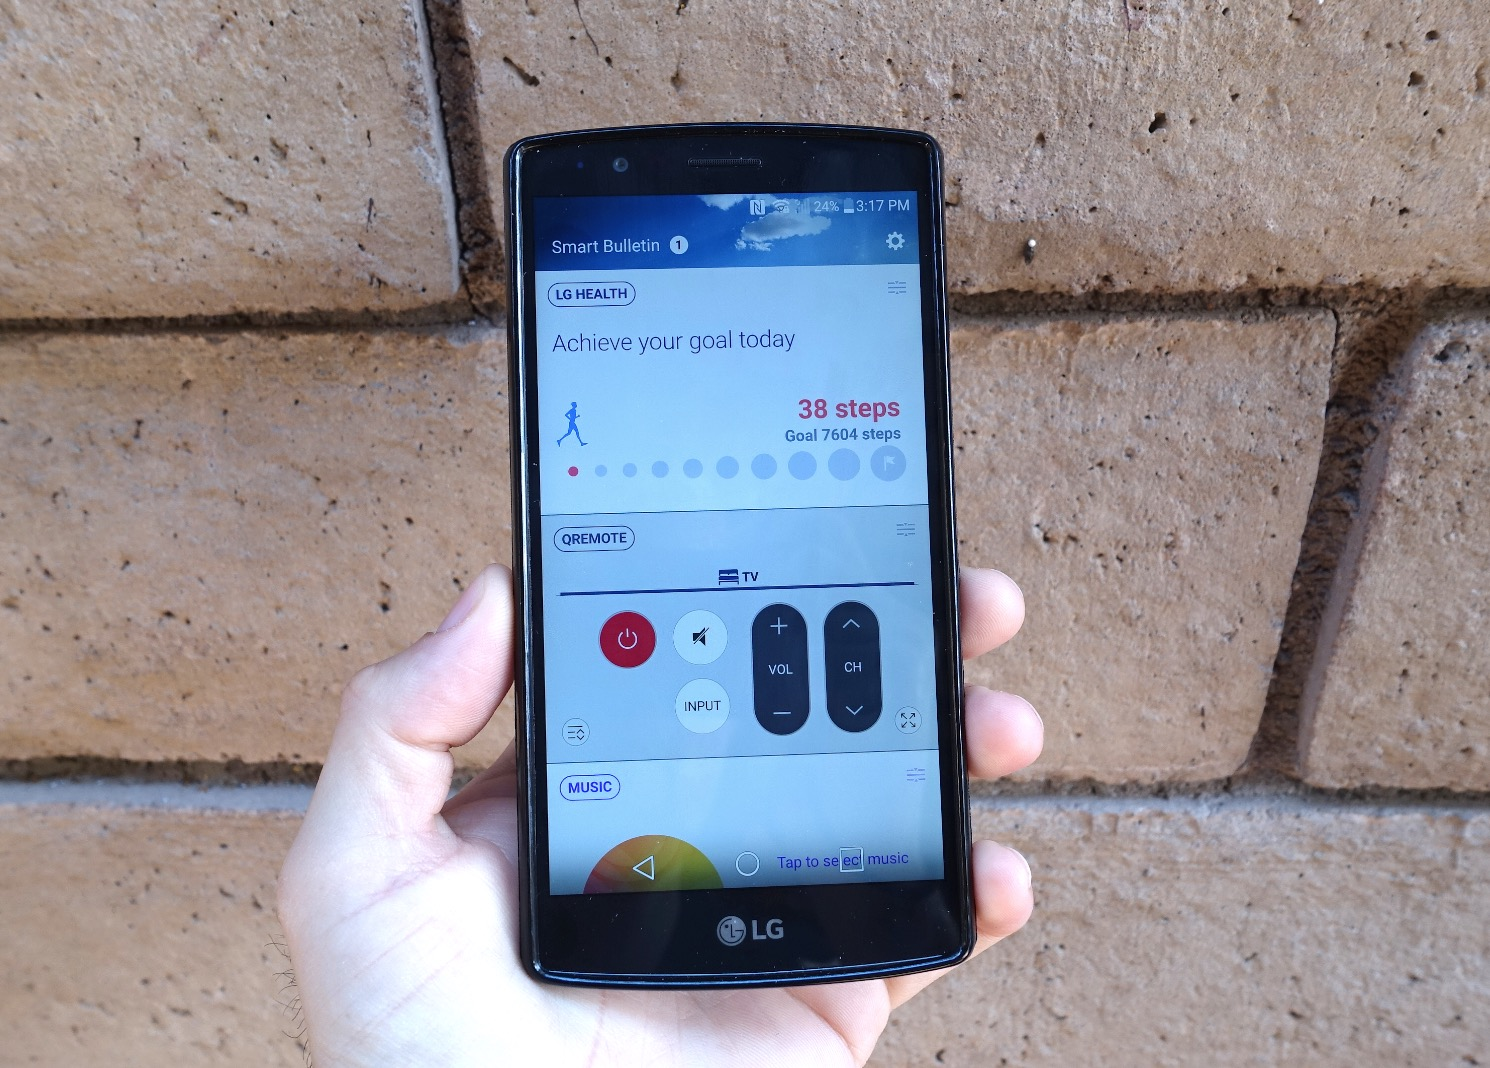 How To Turn Off LG G4 Smart Bulletin